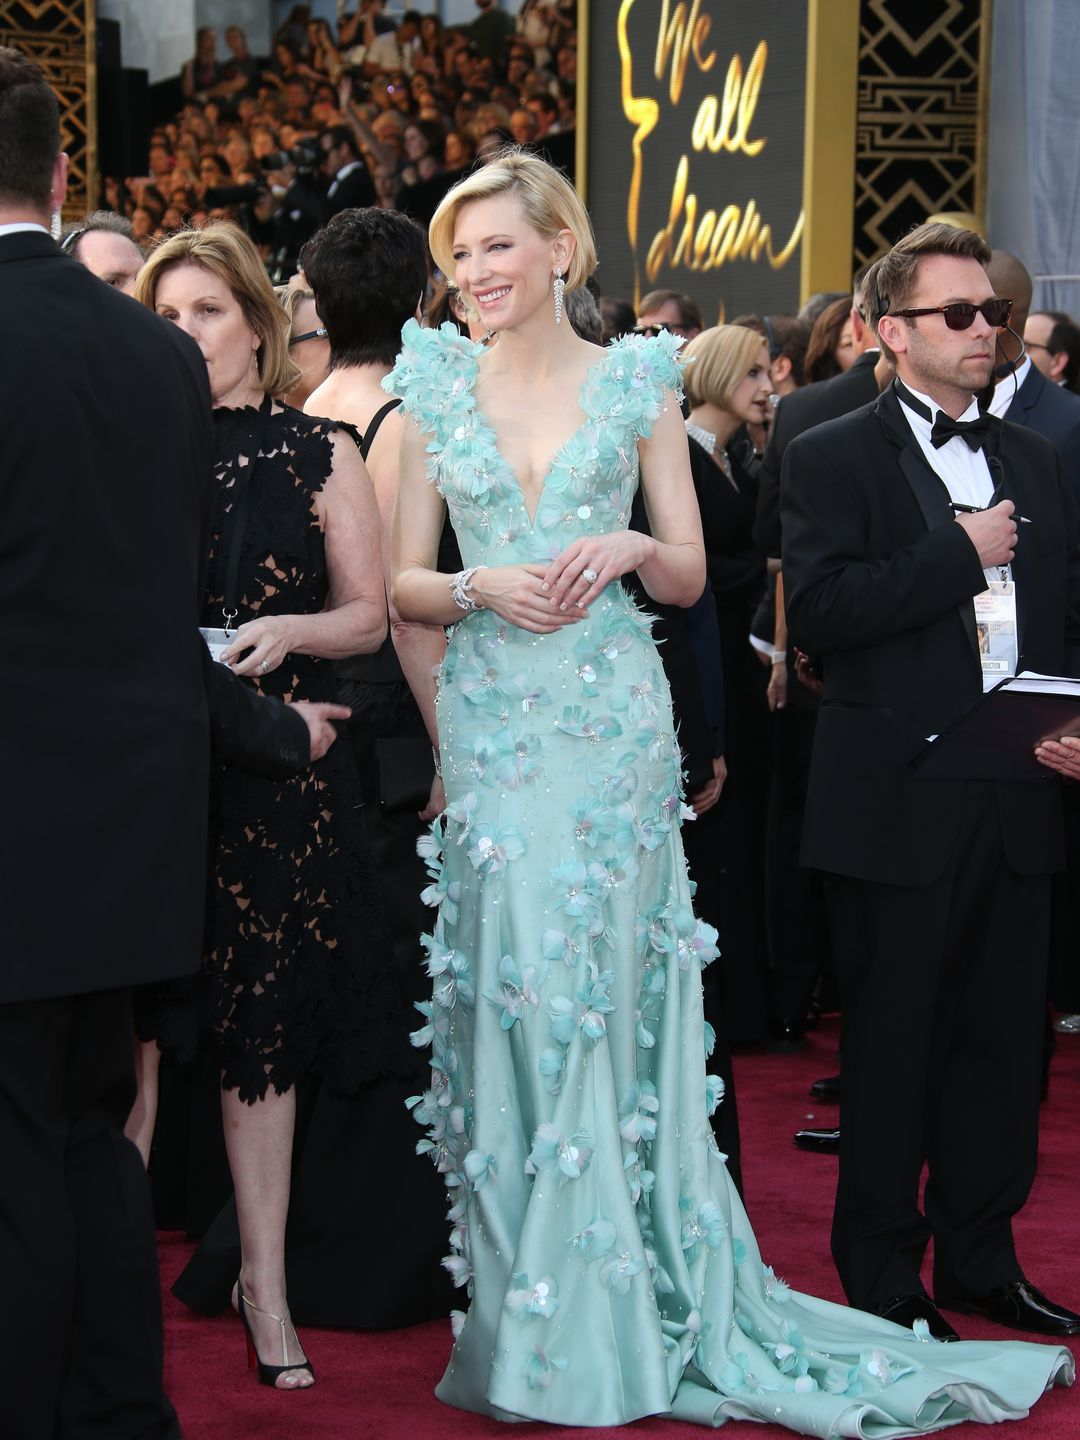 Over 260 of USA TODAY's best Oscar photos (With images